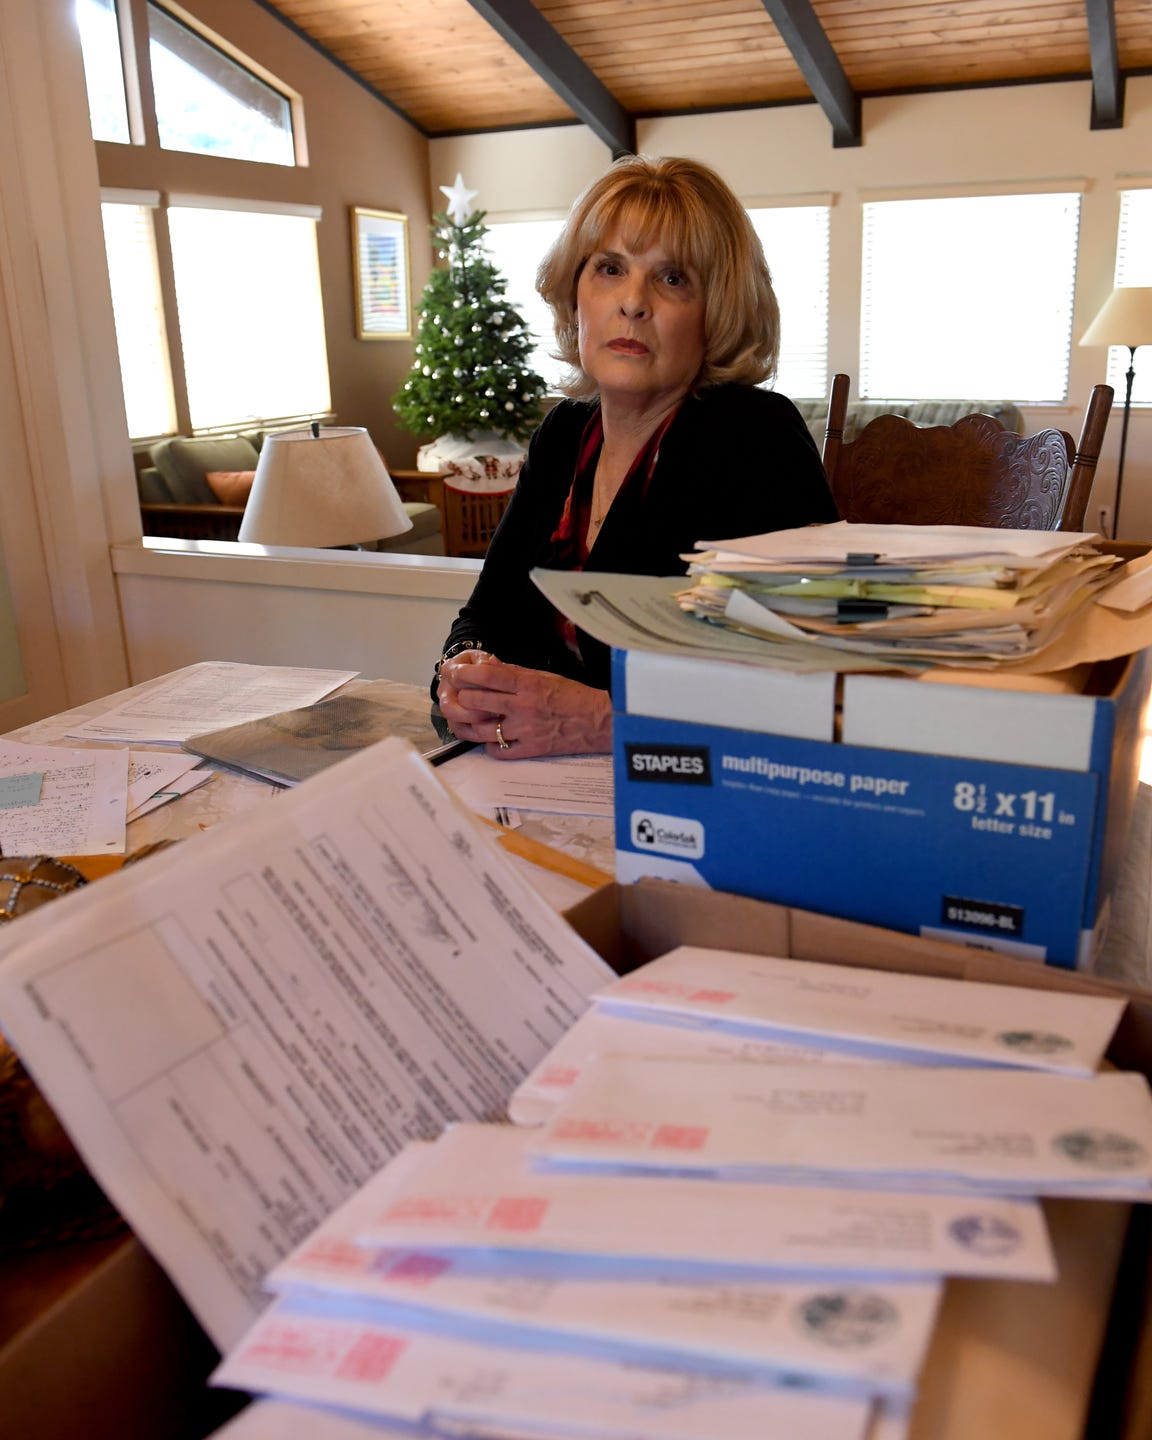 Teresa Pasquini has spent years advocating for the severely mentally ill in Contra Costa County. Three years ago, the county's Board of Supervisors approved the use of Laura's Laws, giving Pasquini and other families another option. Paquini is shown here surrouded by paperwork involving her son.